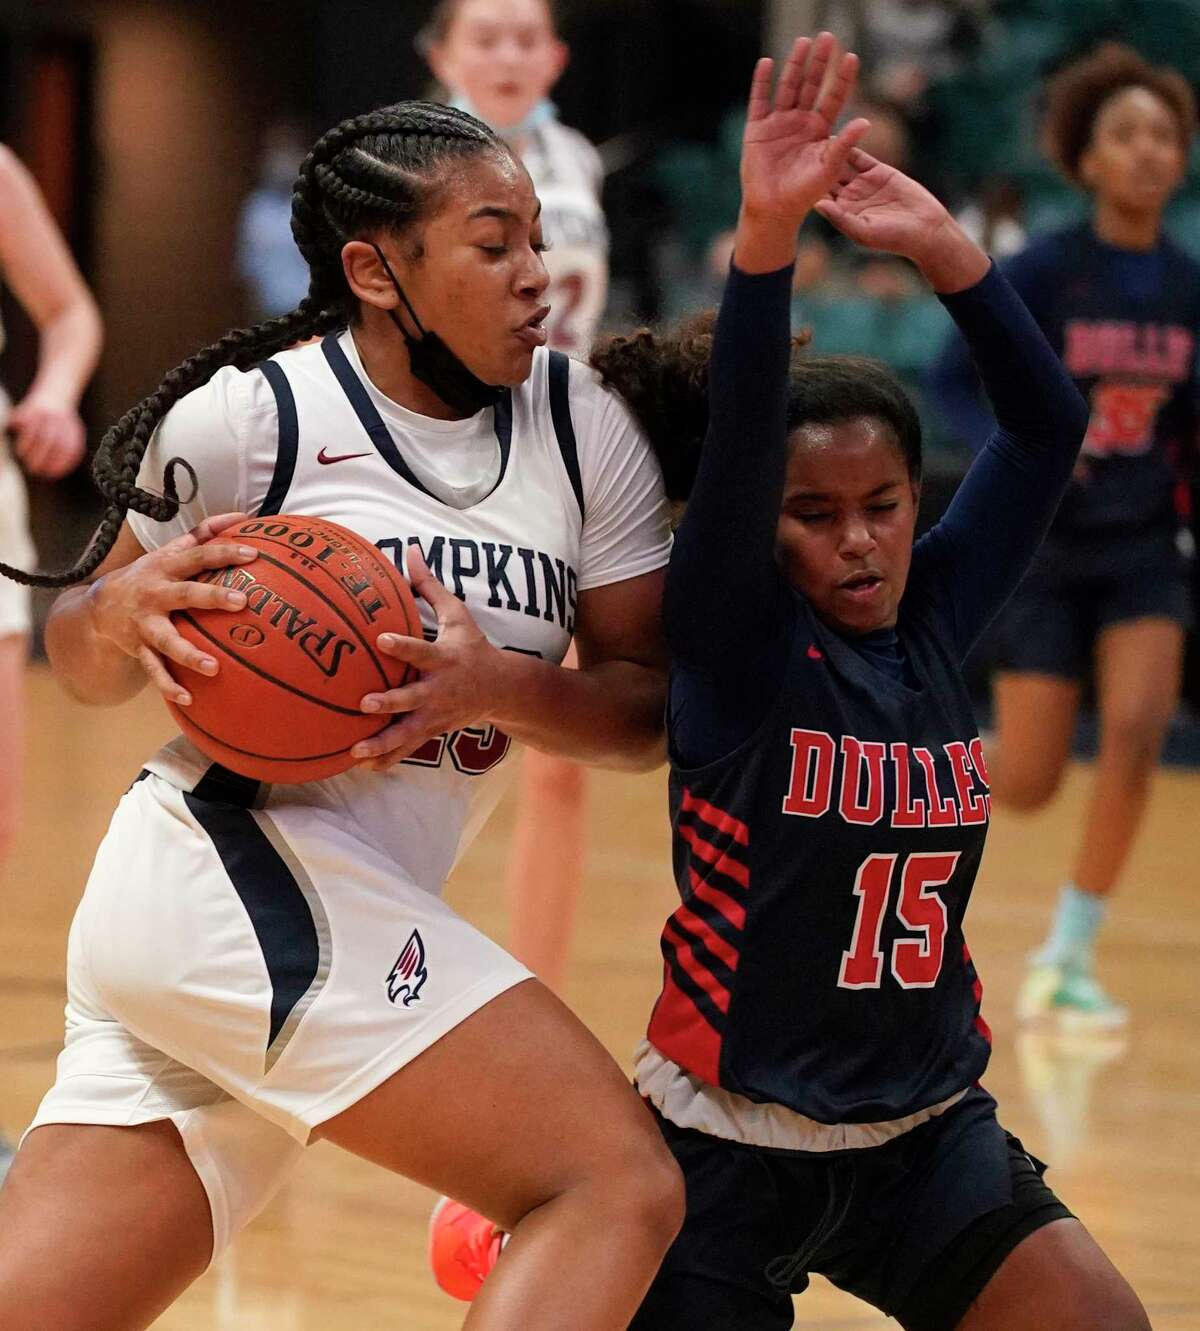 Tompkins Loghan Johnson (23) is fouled by Dulles Victoria Moore (15) during girls basketball playoff game at the Merrell Center Wednesday, Feb. 24, 2021 in Katy.